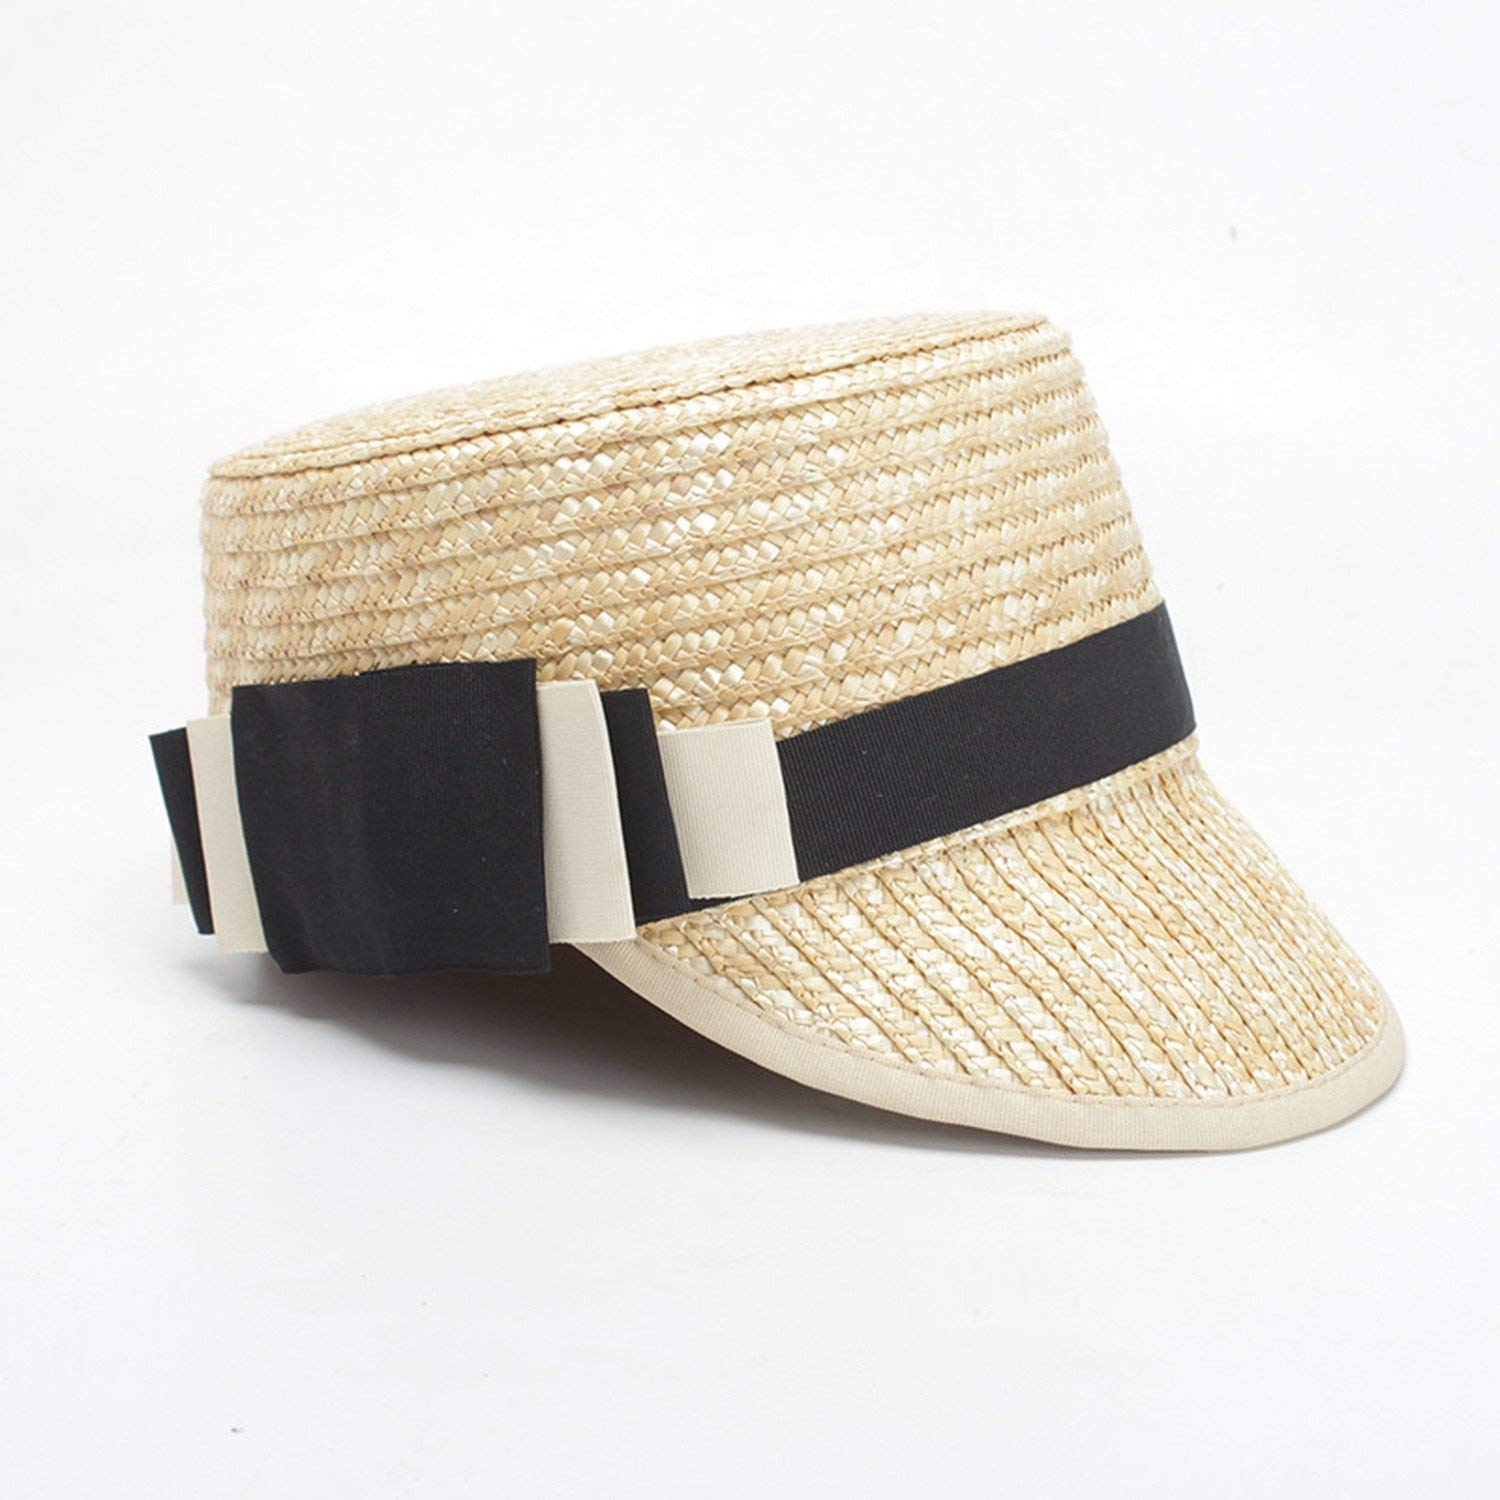 6a54da37c837a Get Quotations · Summer hat ladies straw straw hat sun hat flat top cap  Europe and the United States